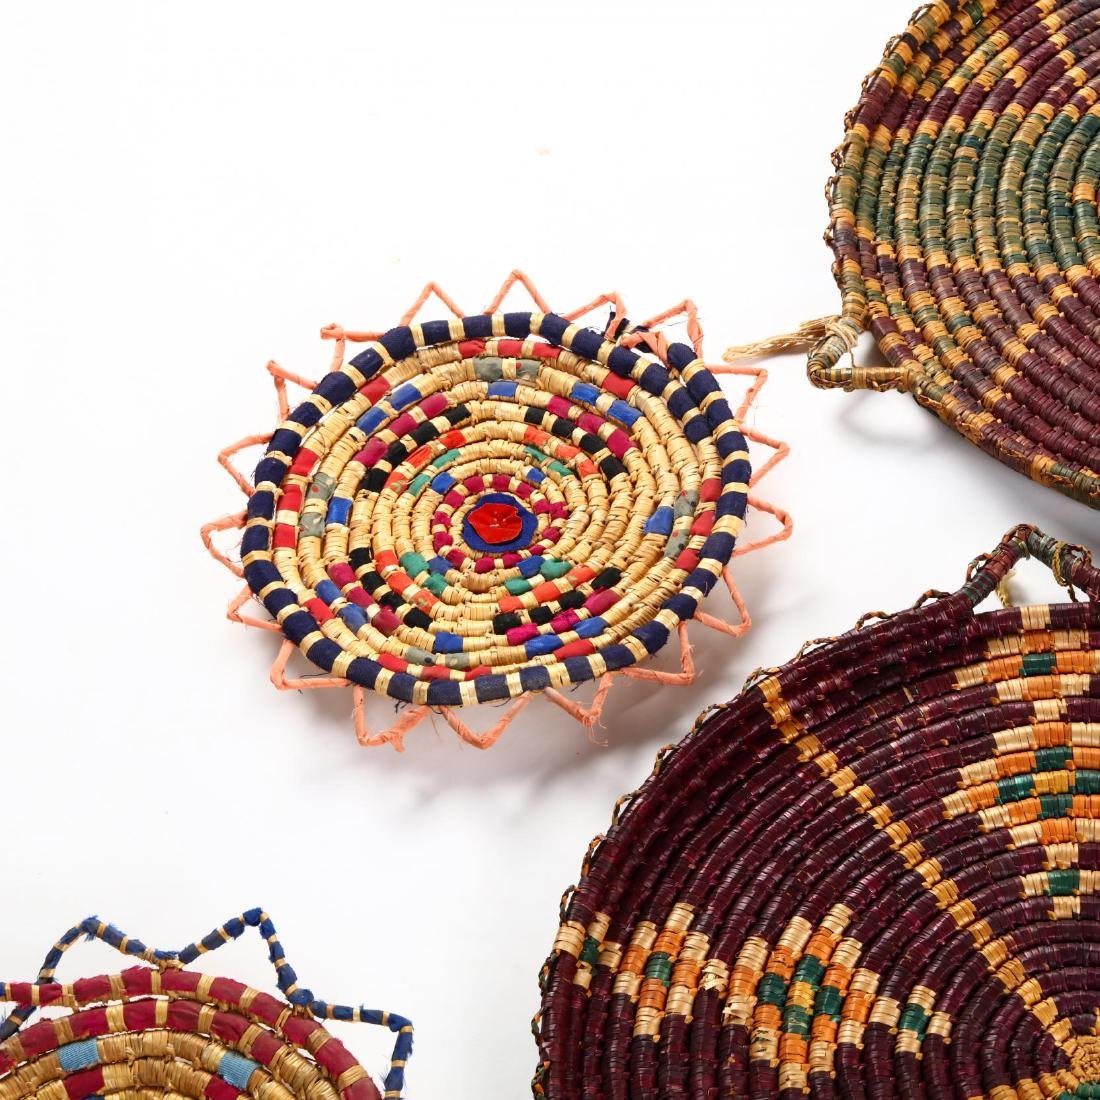 Group of Decorative Cypriot Serving Baskets - 5